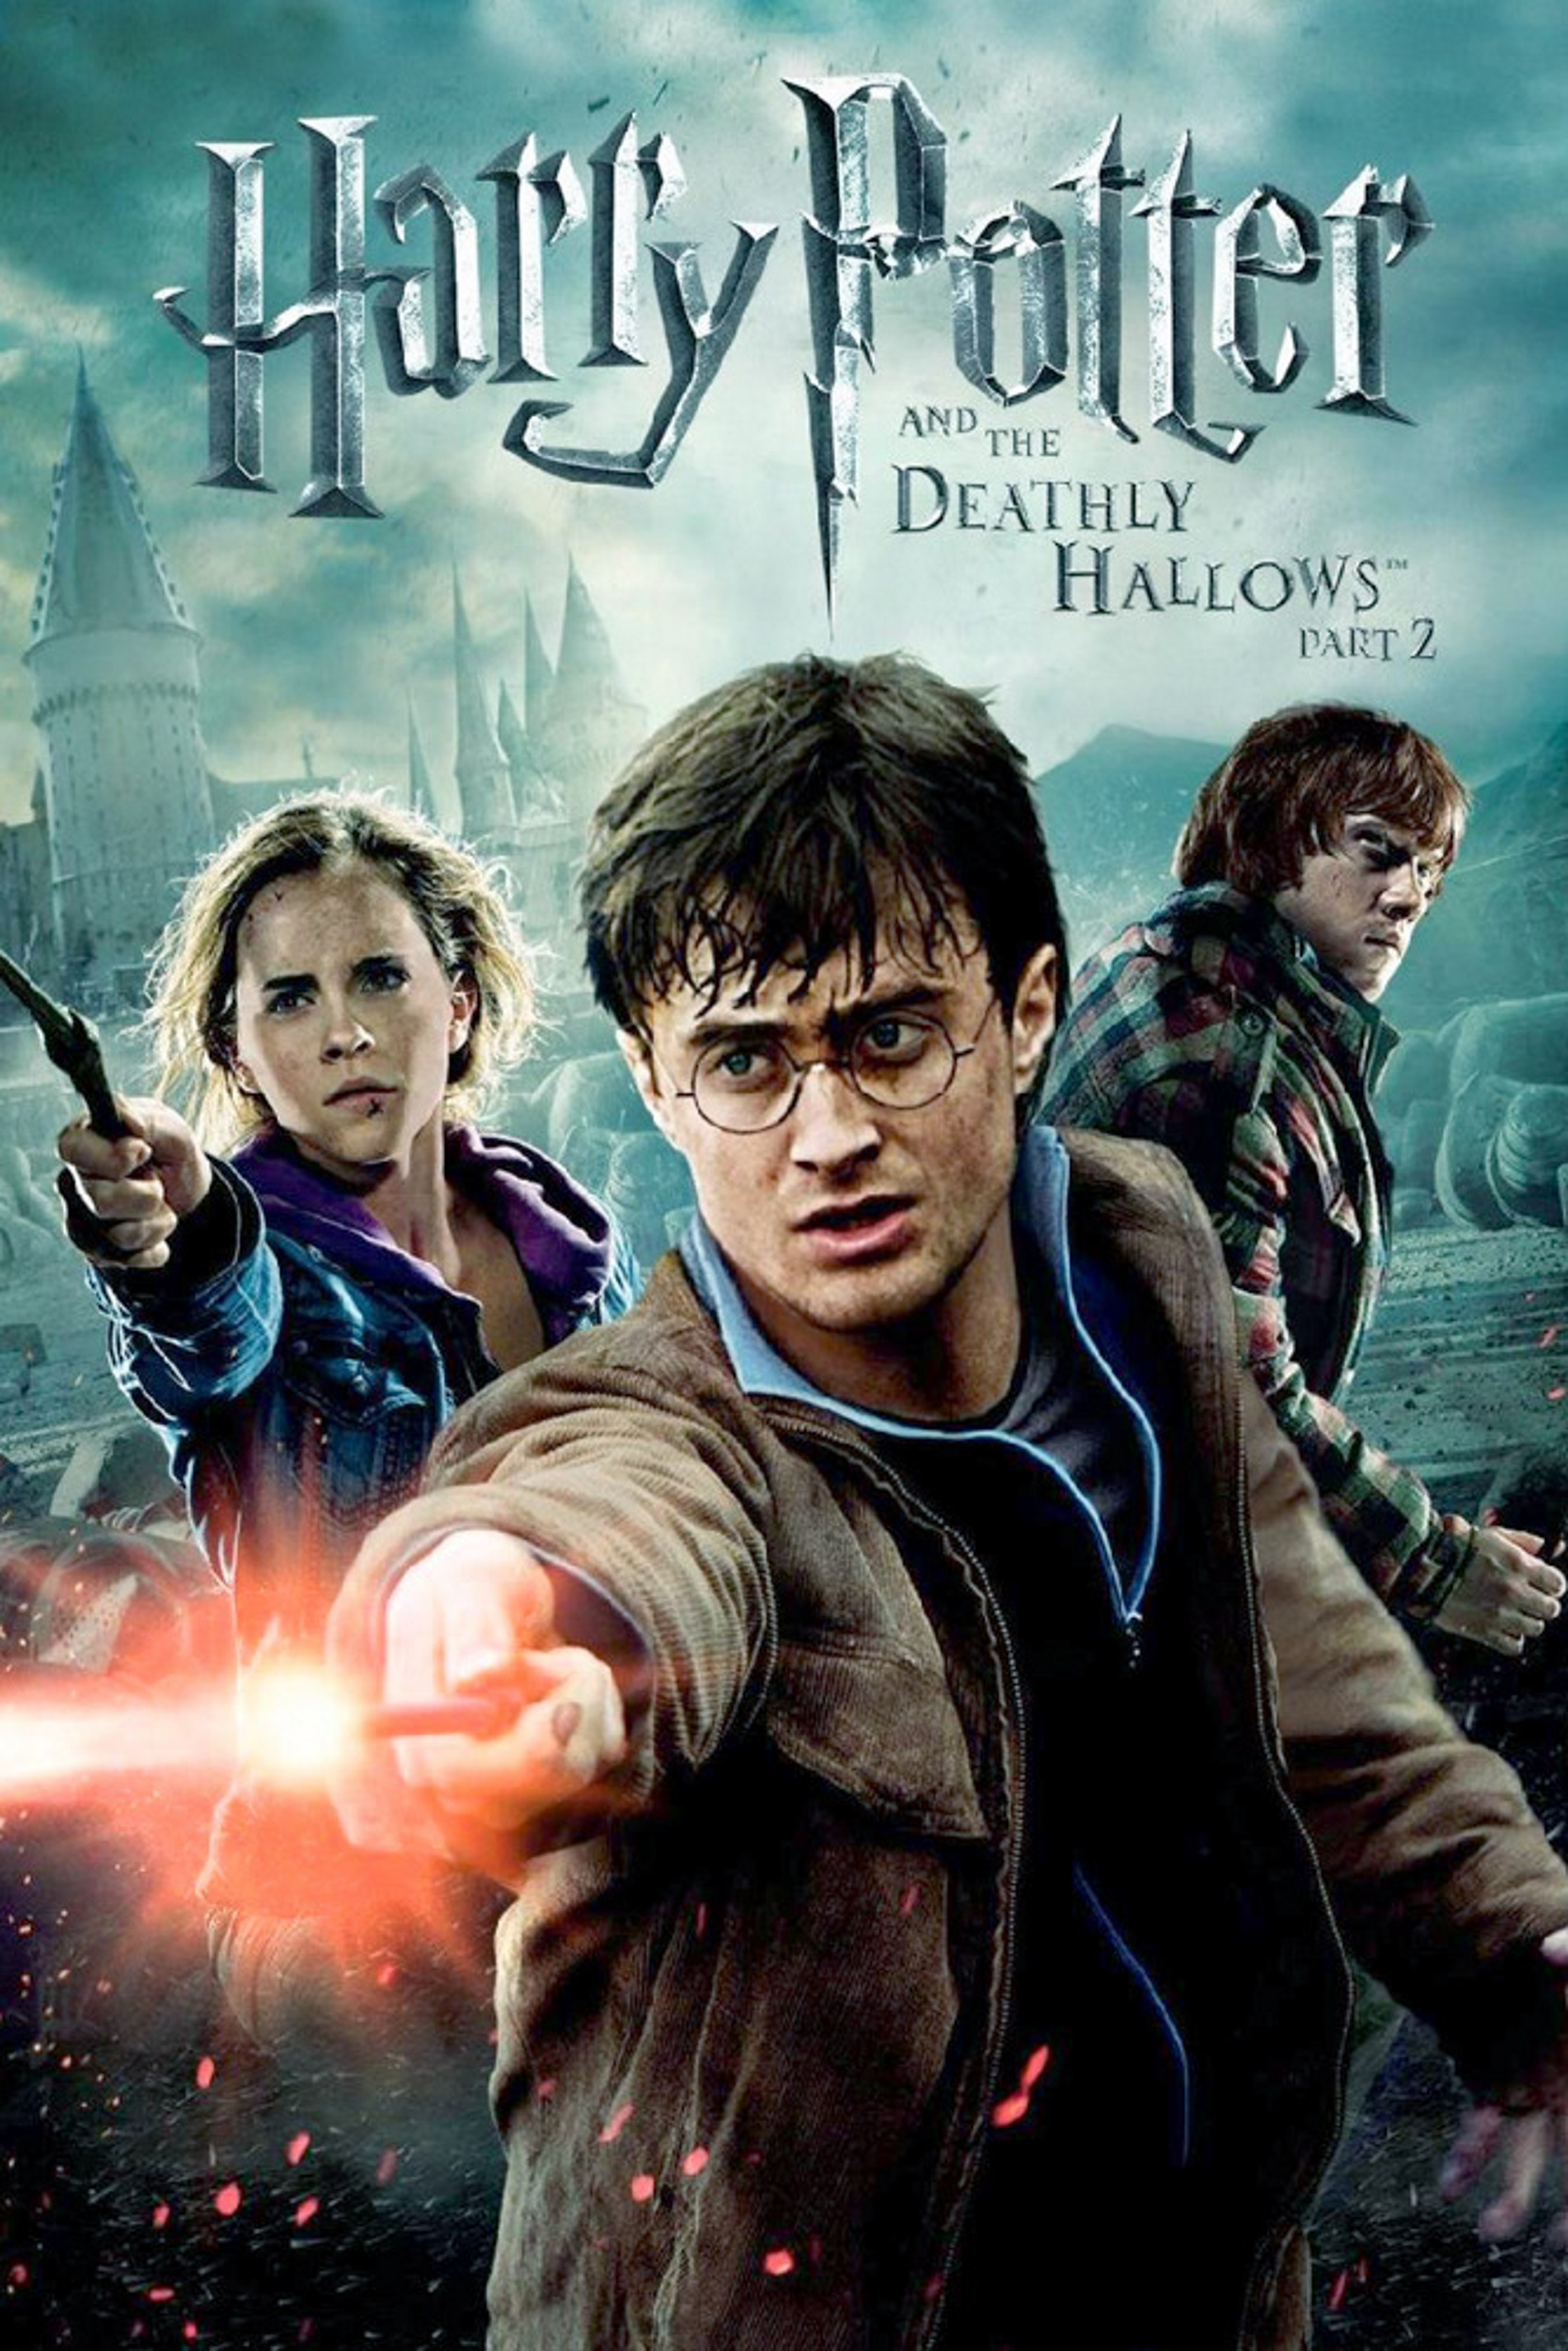 FANTASY MOVIE POSTER Harry Potter and the Deathly Hallows Part 2 Harry